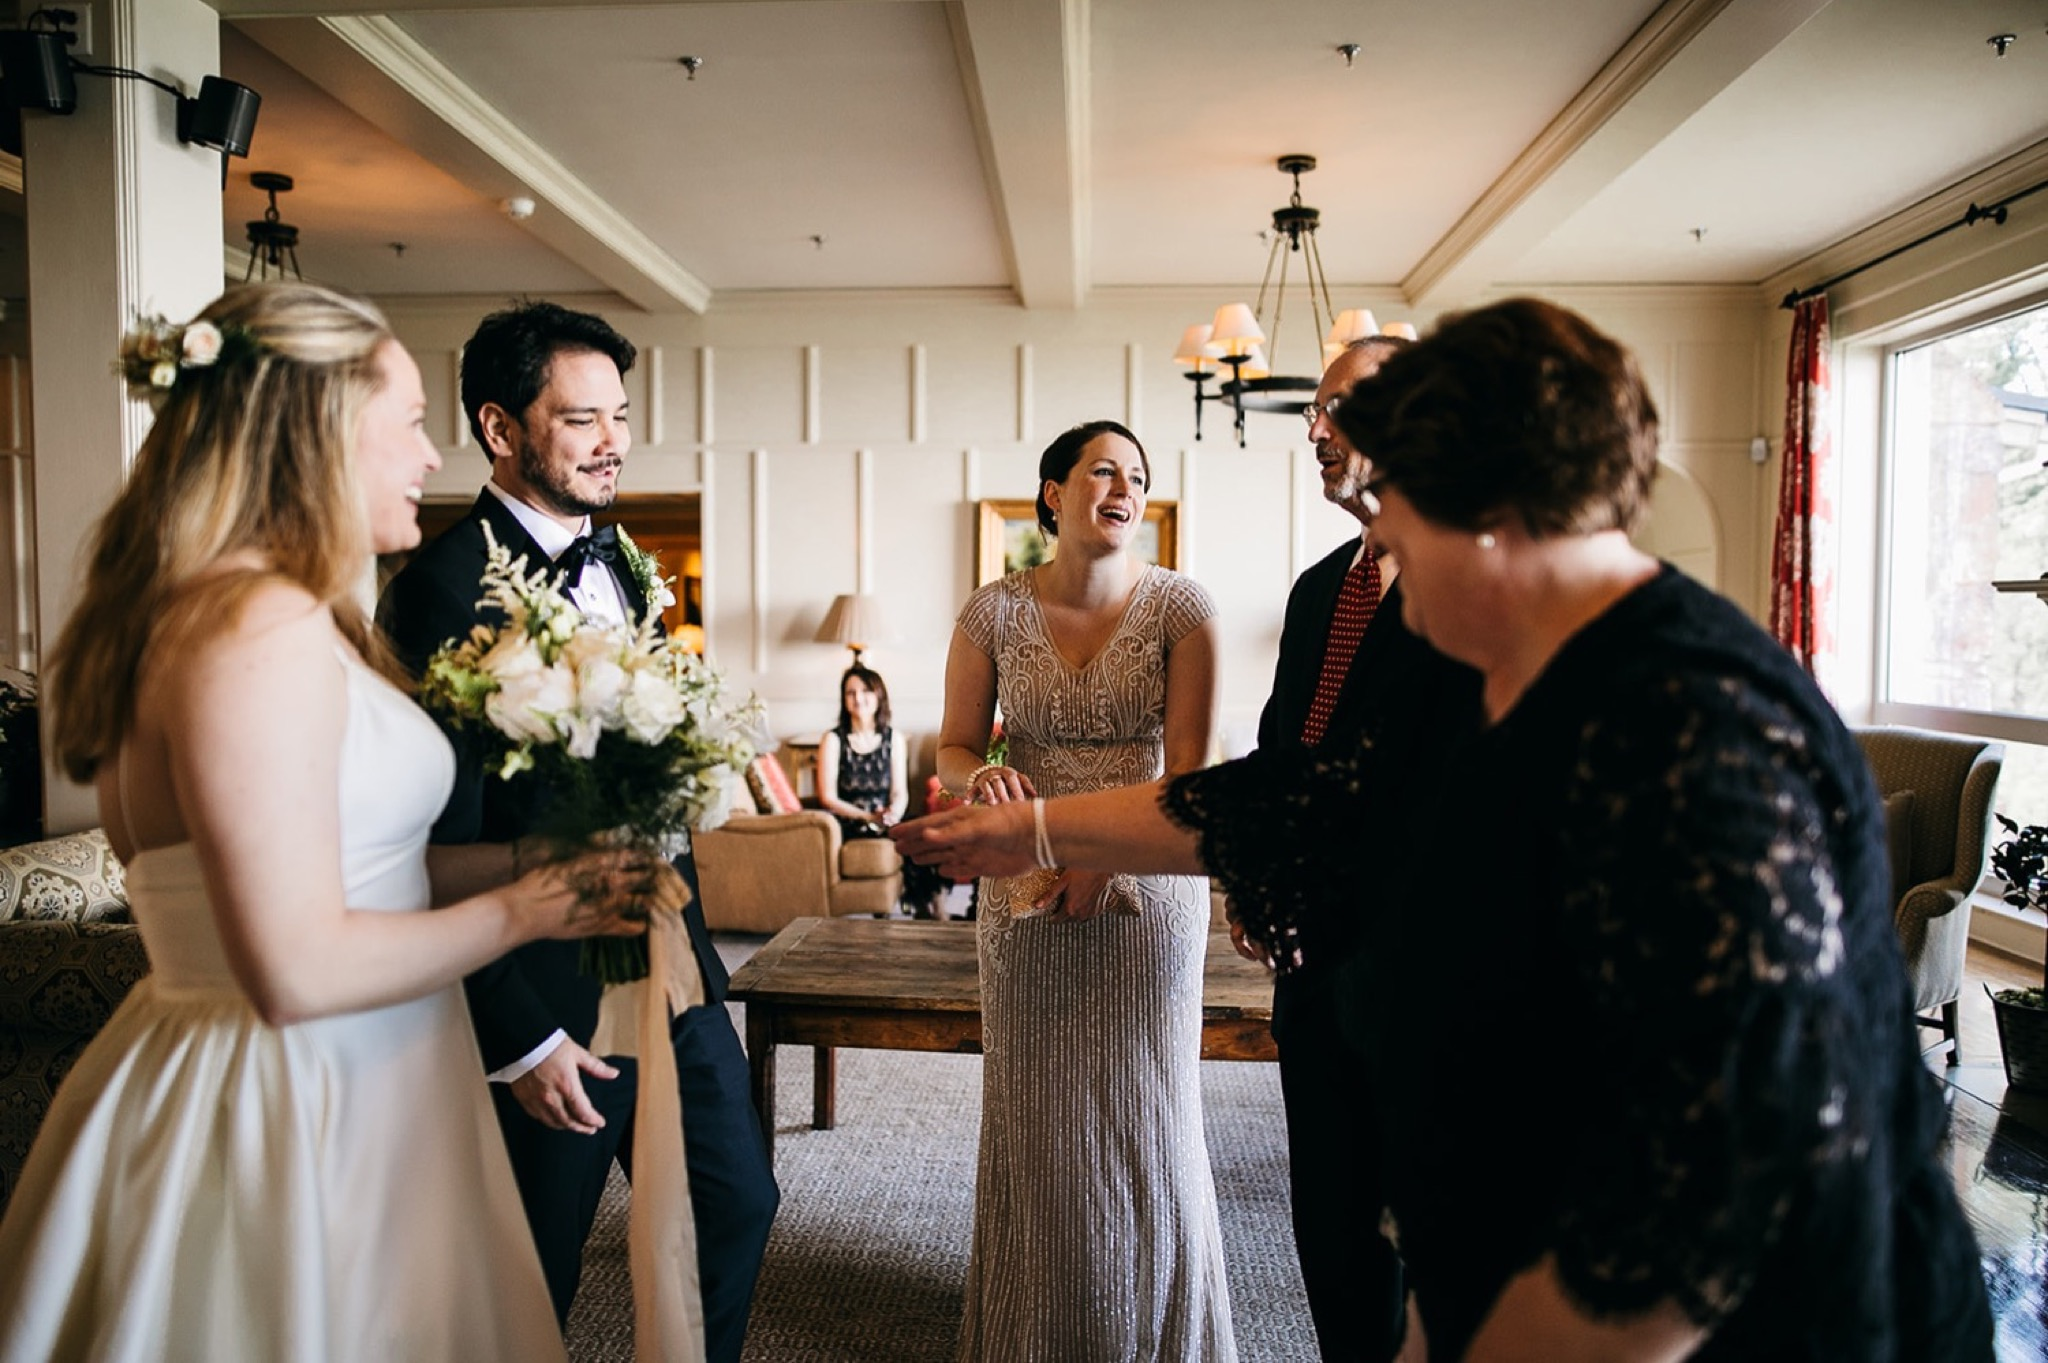 bride and groom smile at friends and family who congratulate them